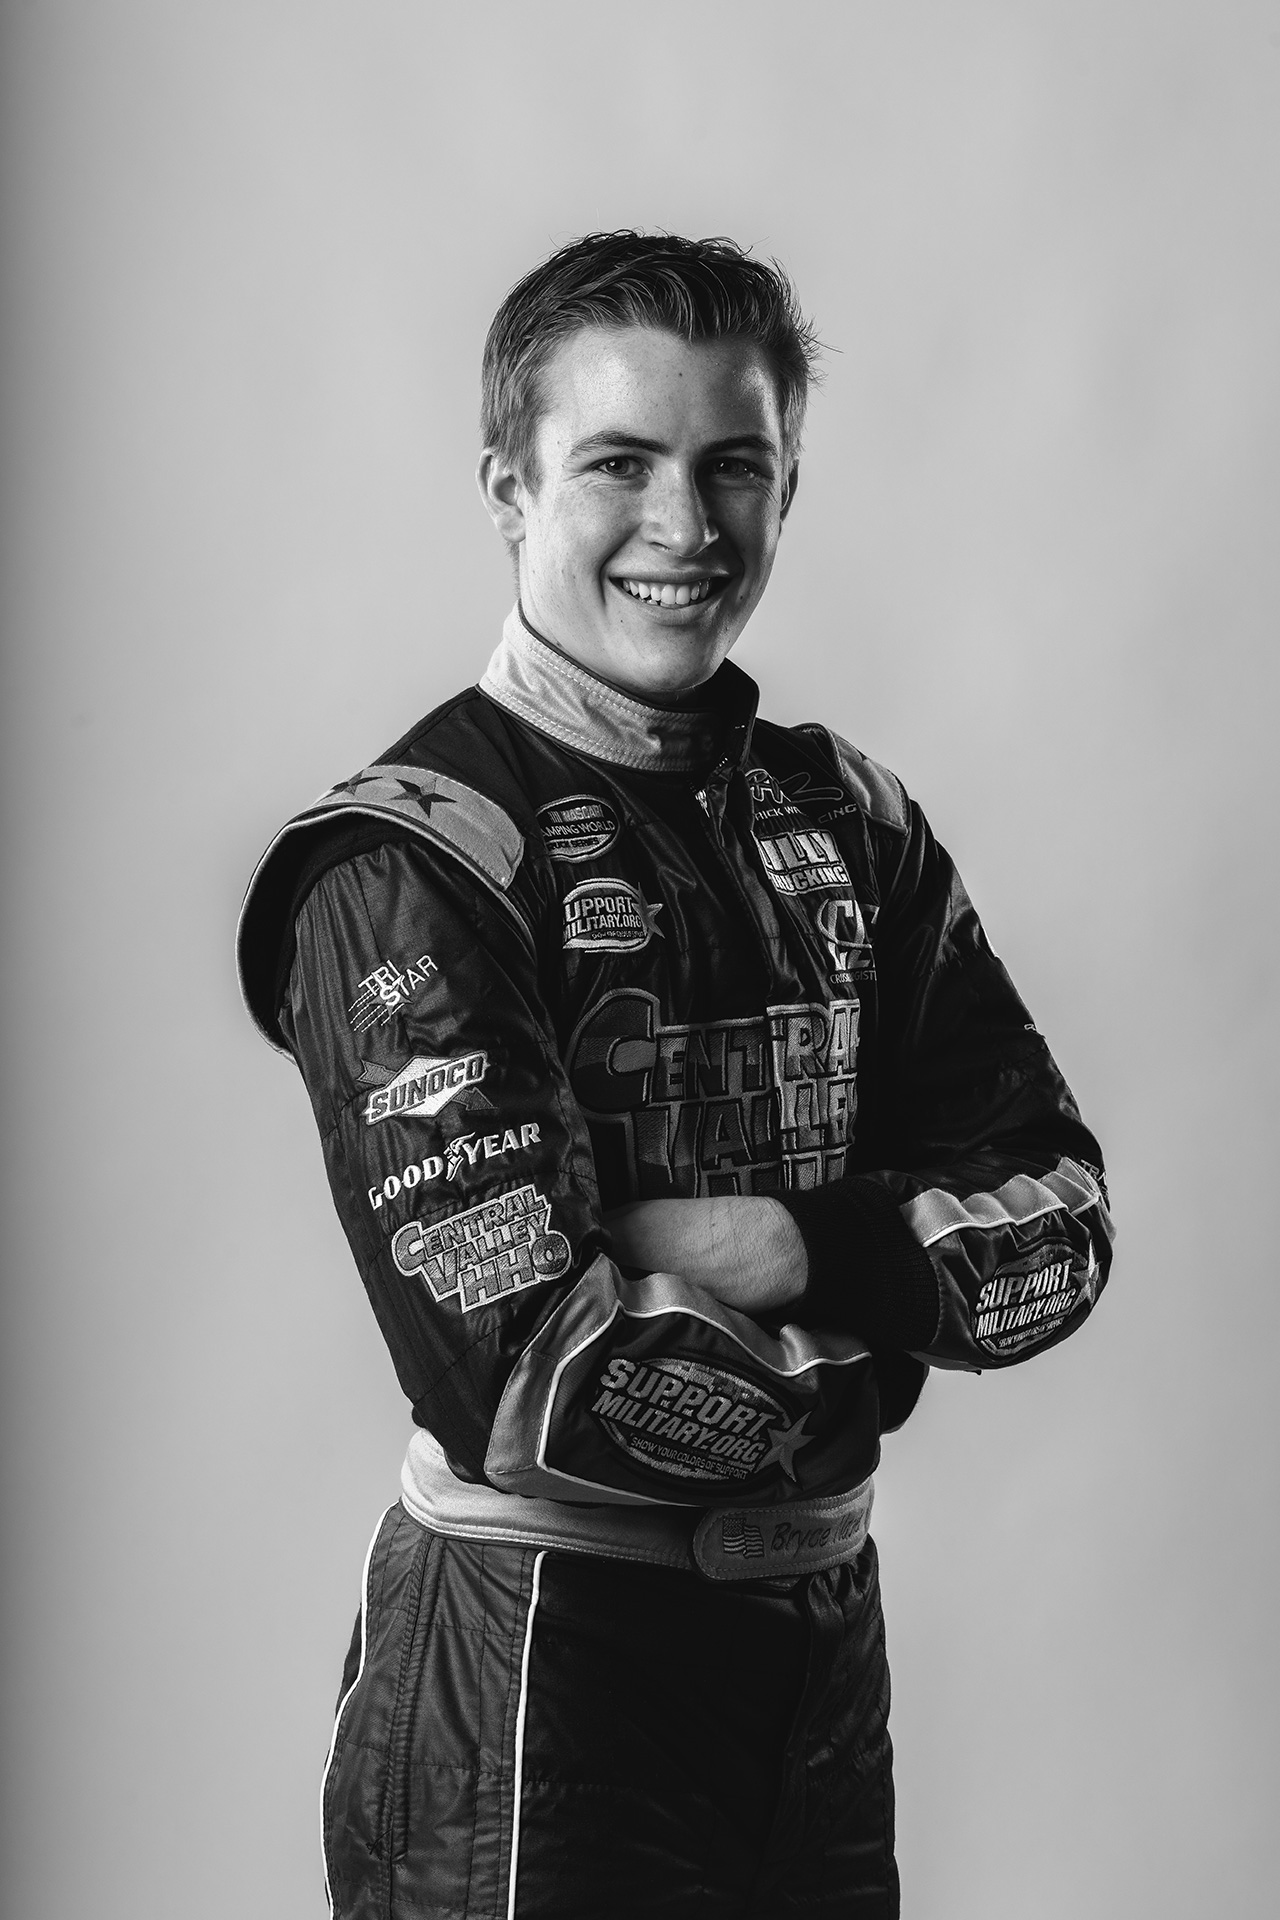 NASCAR Black and White Photo